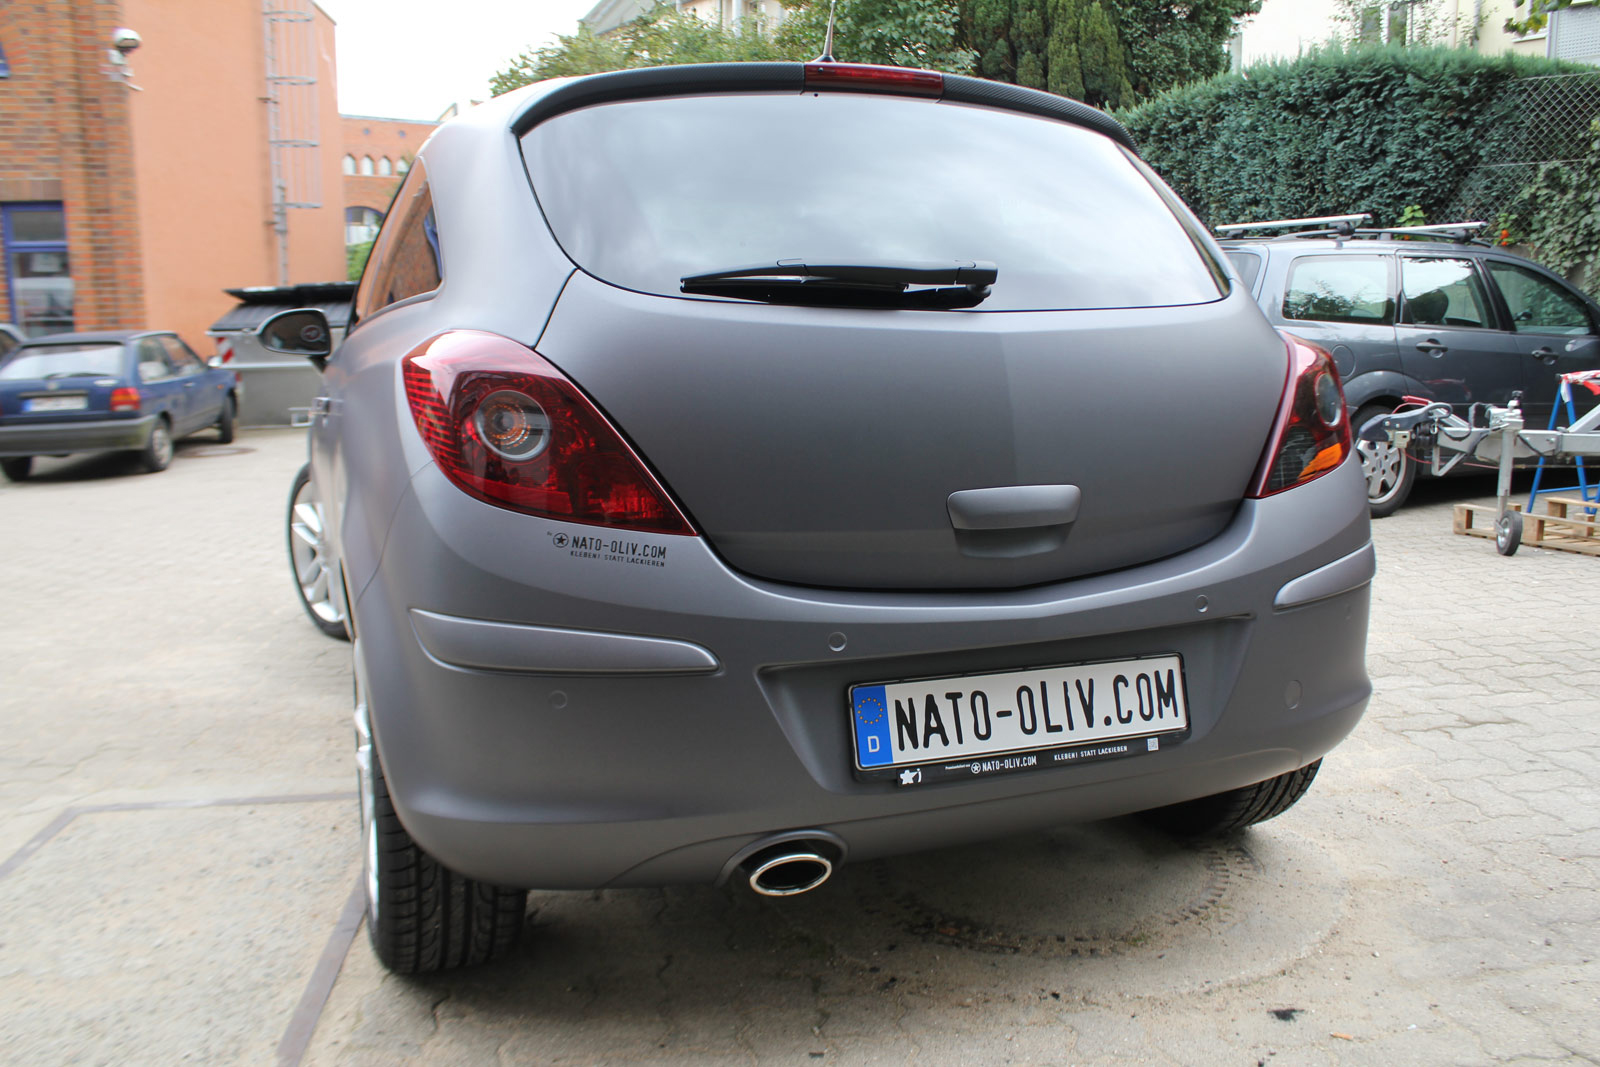 OPEL_CORSA_ANTHRAZIT_MATT_METALLIC_EXTRAS_CARBON_17